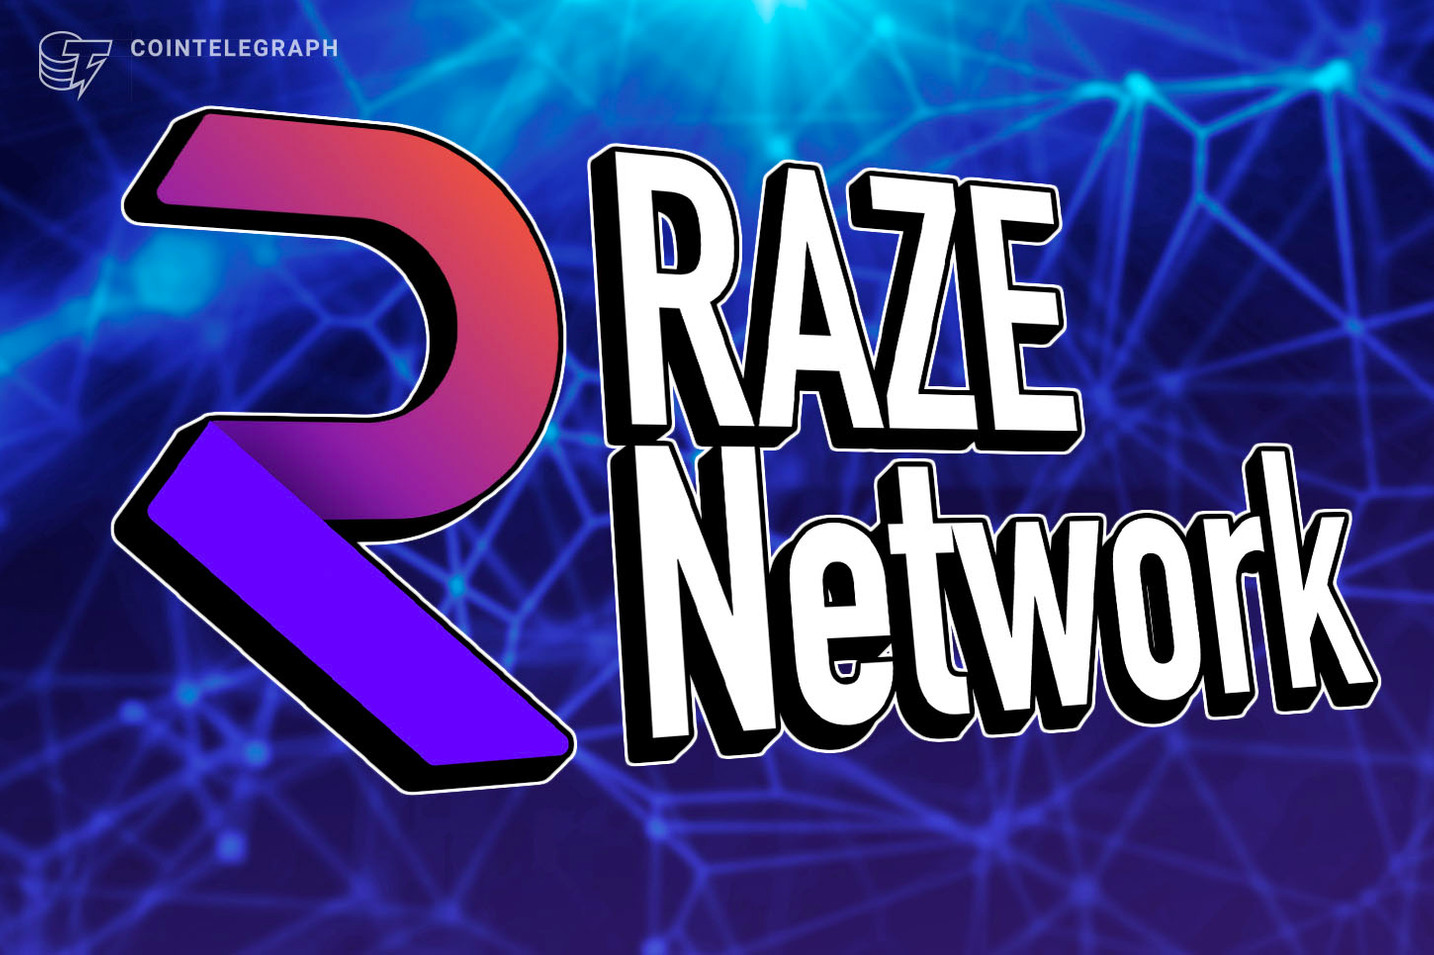 Raze Network to launch its public sale on Balancer Liquidity Bootstrapping Pool